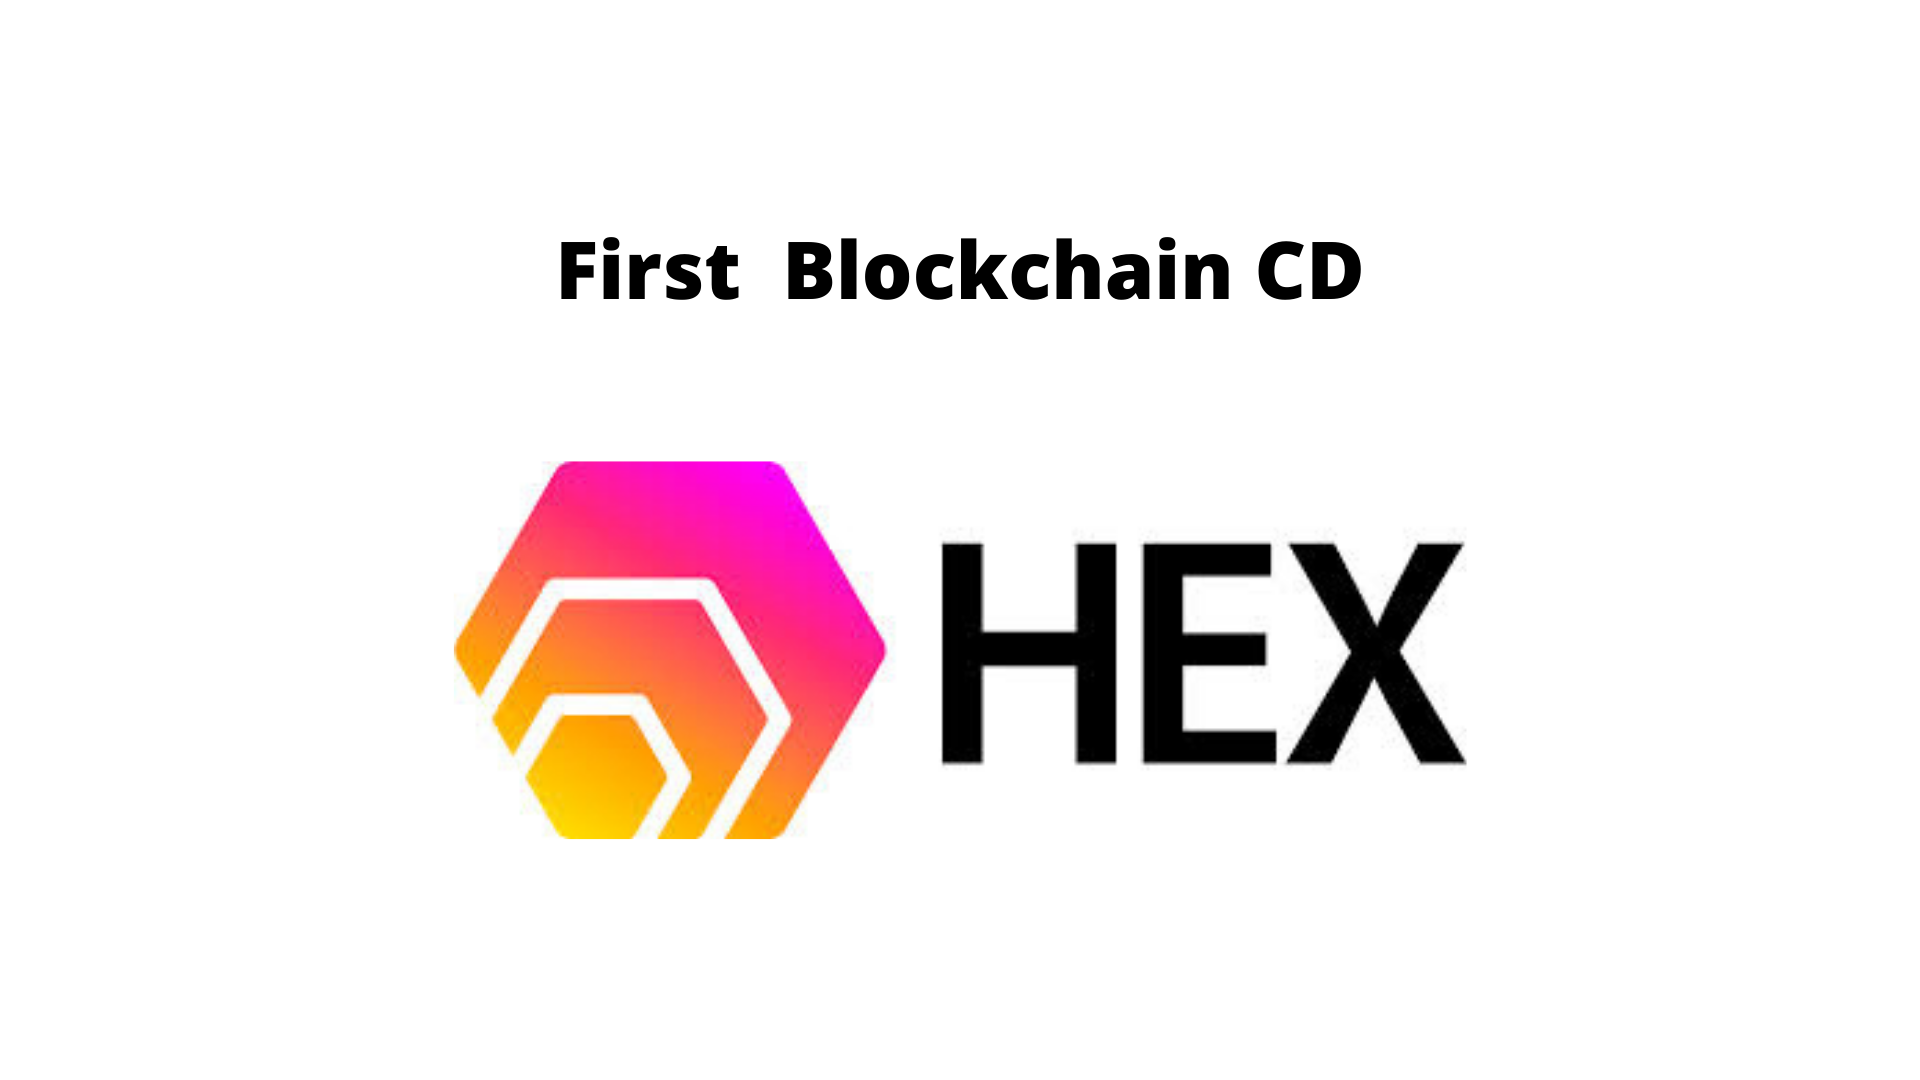 HEX Cryptocurrency – The Decentralized Certificate of Deposit